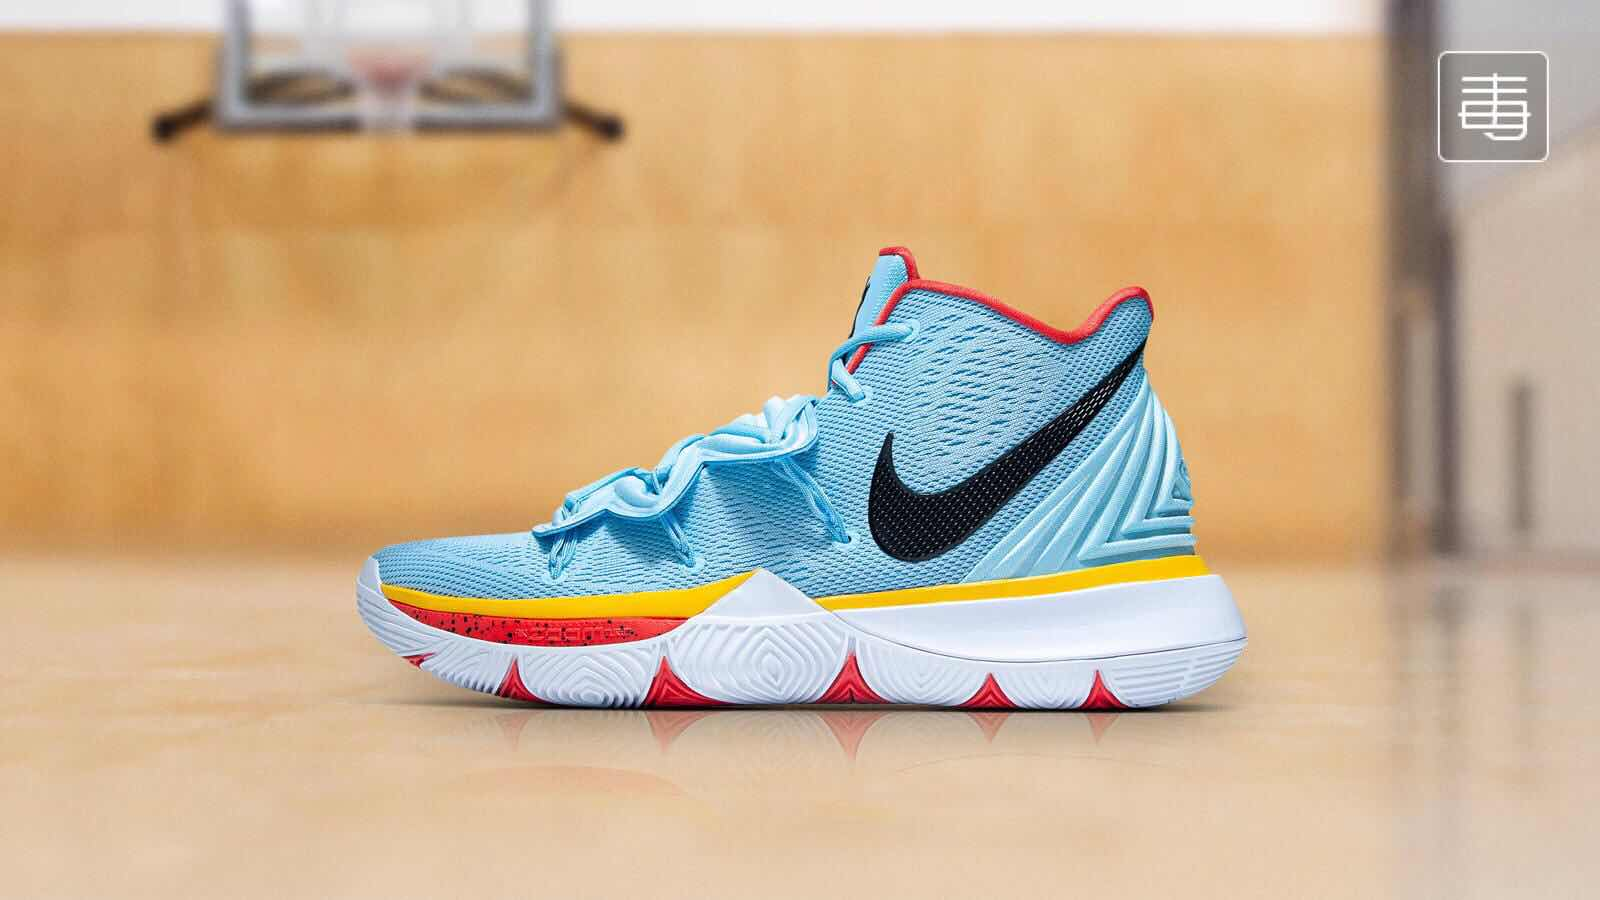 Nike Kyrie 5 Jade Blue Red Yellow Black Shoes